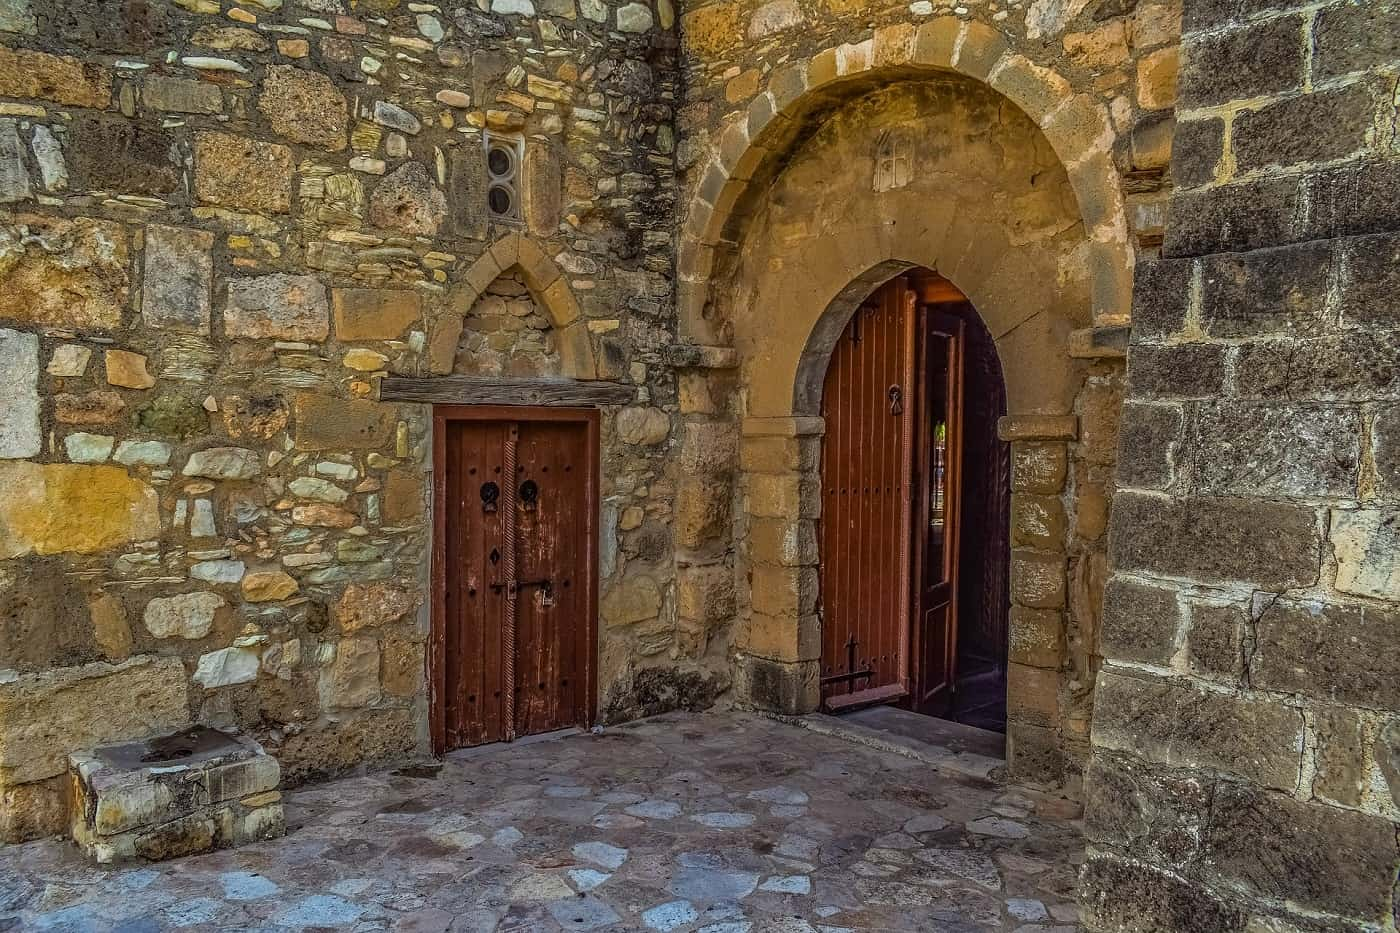 Church with door open - When separateness reigns